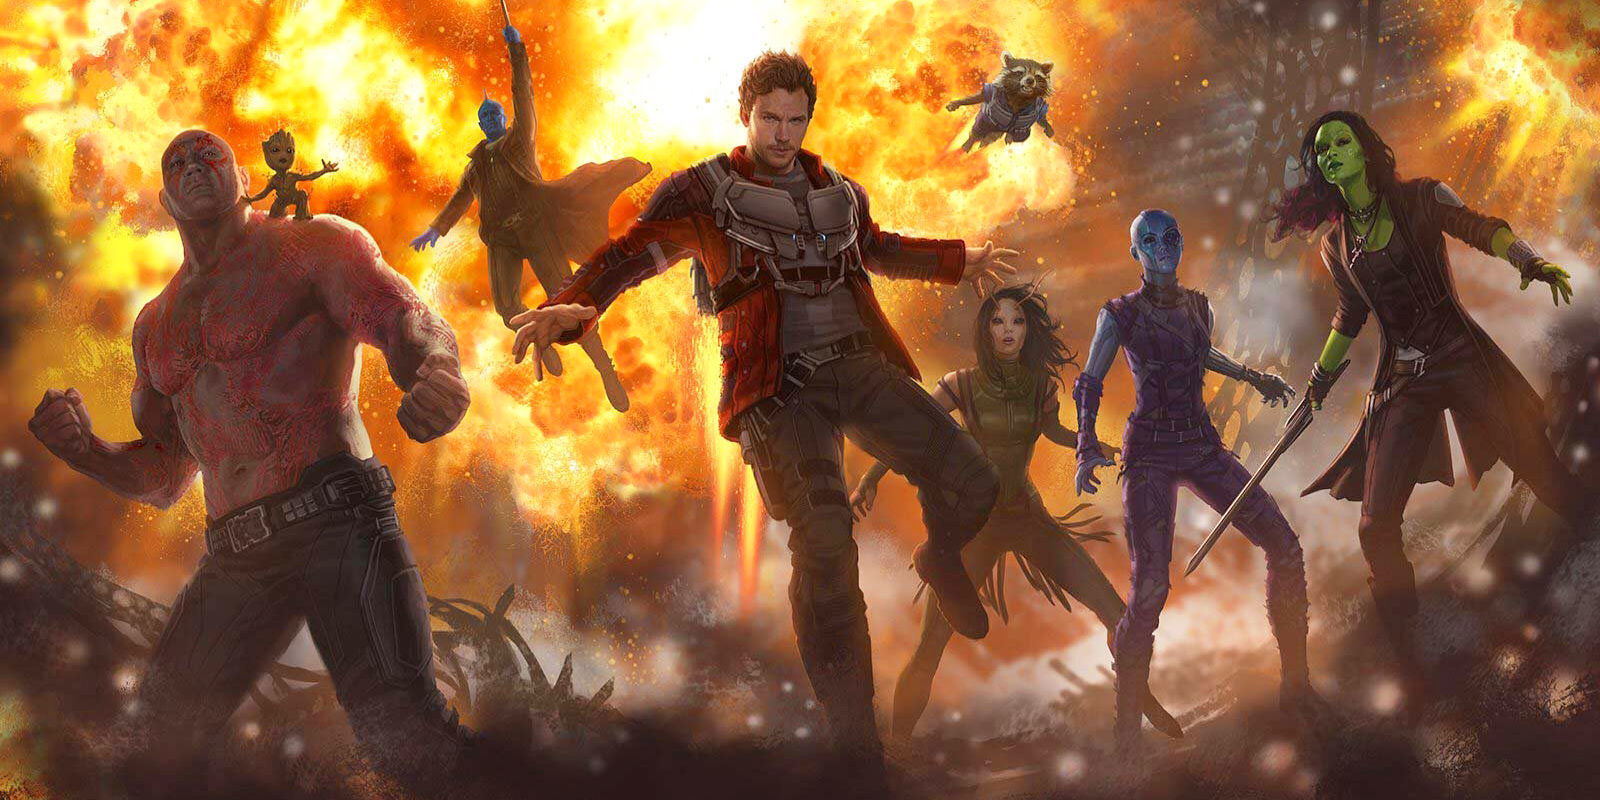 'Guardians of the Galaxy Vol. 2' giveth and it taketh away